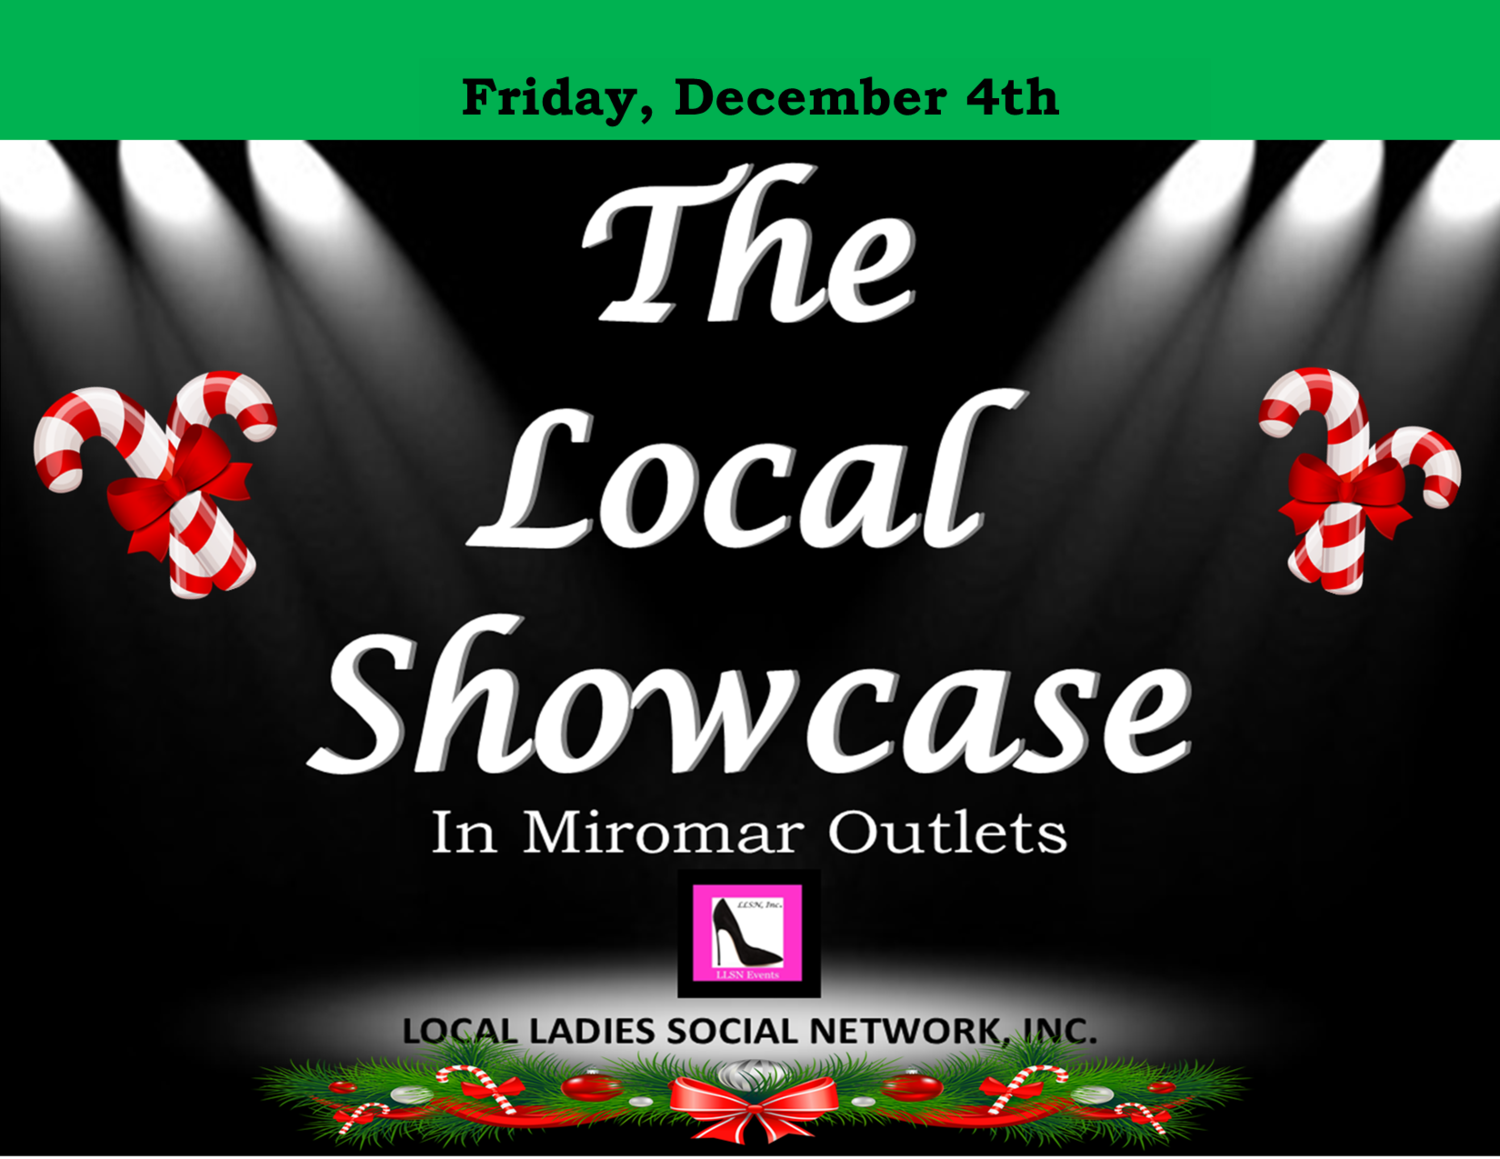 Friday, December 4th 11am-7pm